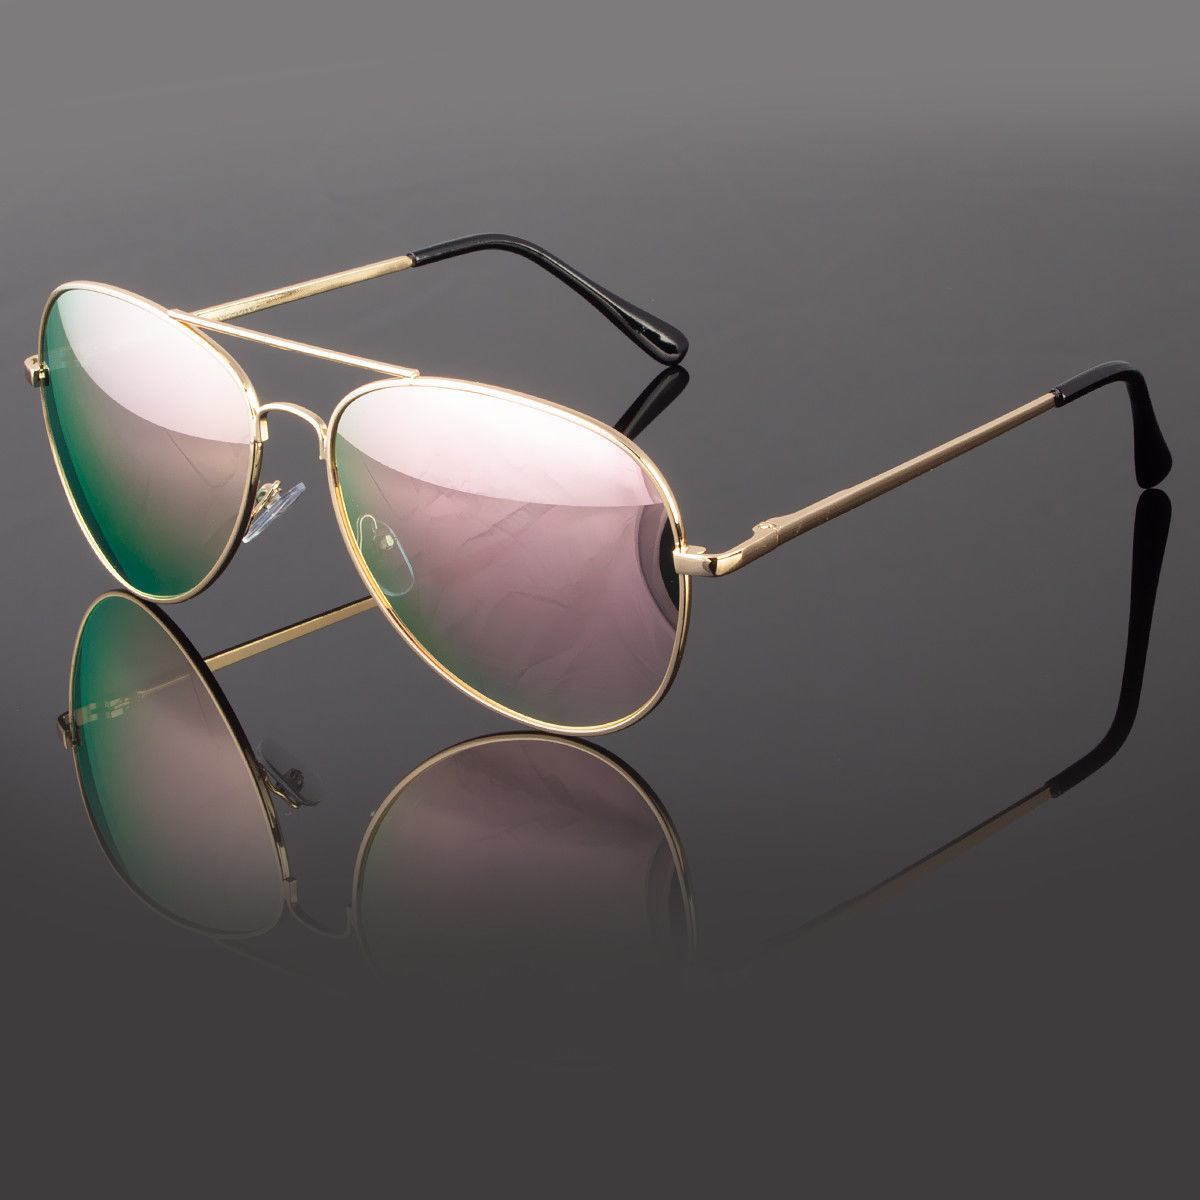 32e0aa0e2 Mens Women Retro Vintage Classic Mirror Lens Fashion Designer Aviator  Sunglasses